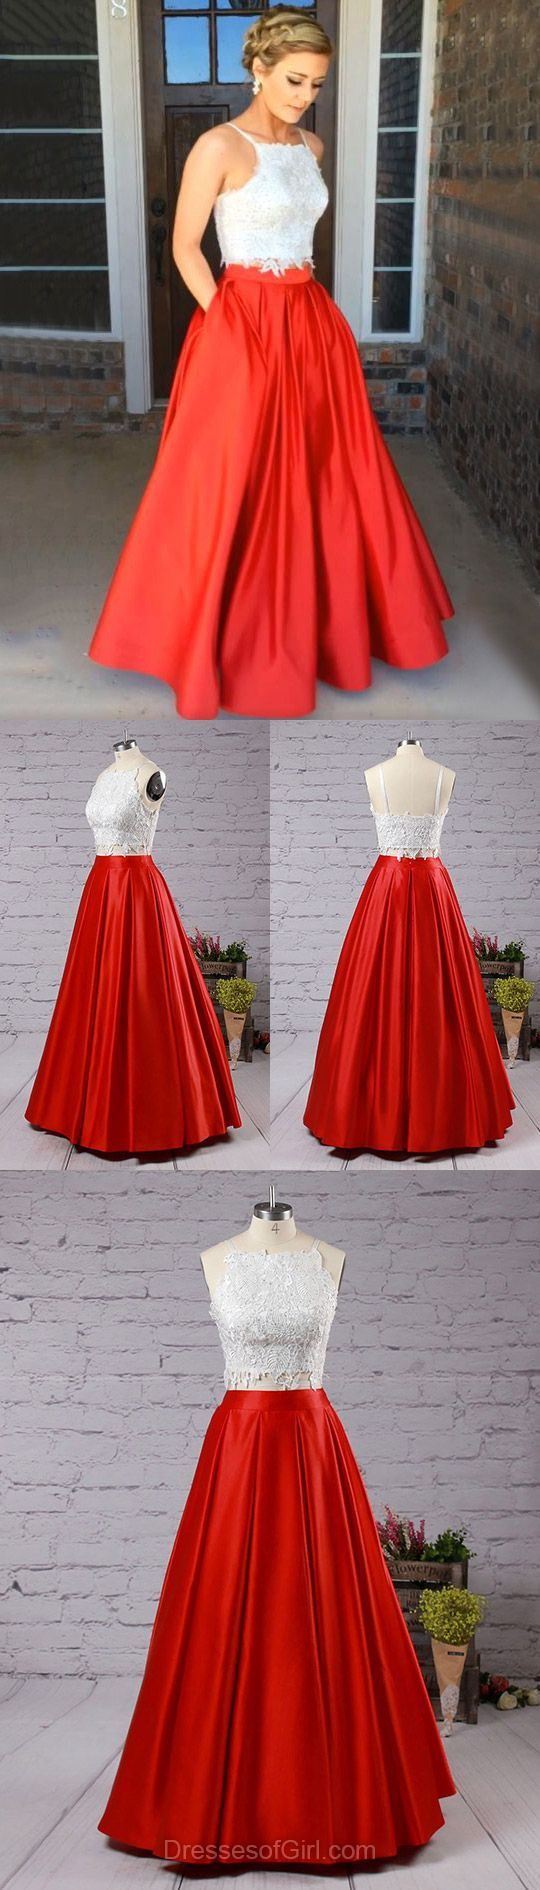 Dress red dress wedding dress bridesmaids dress prom dress